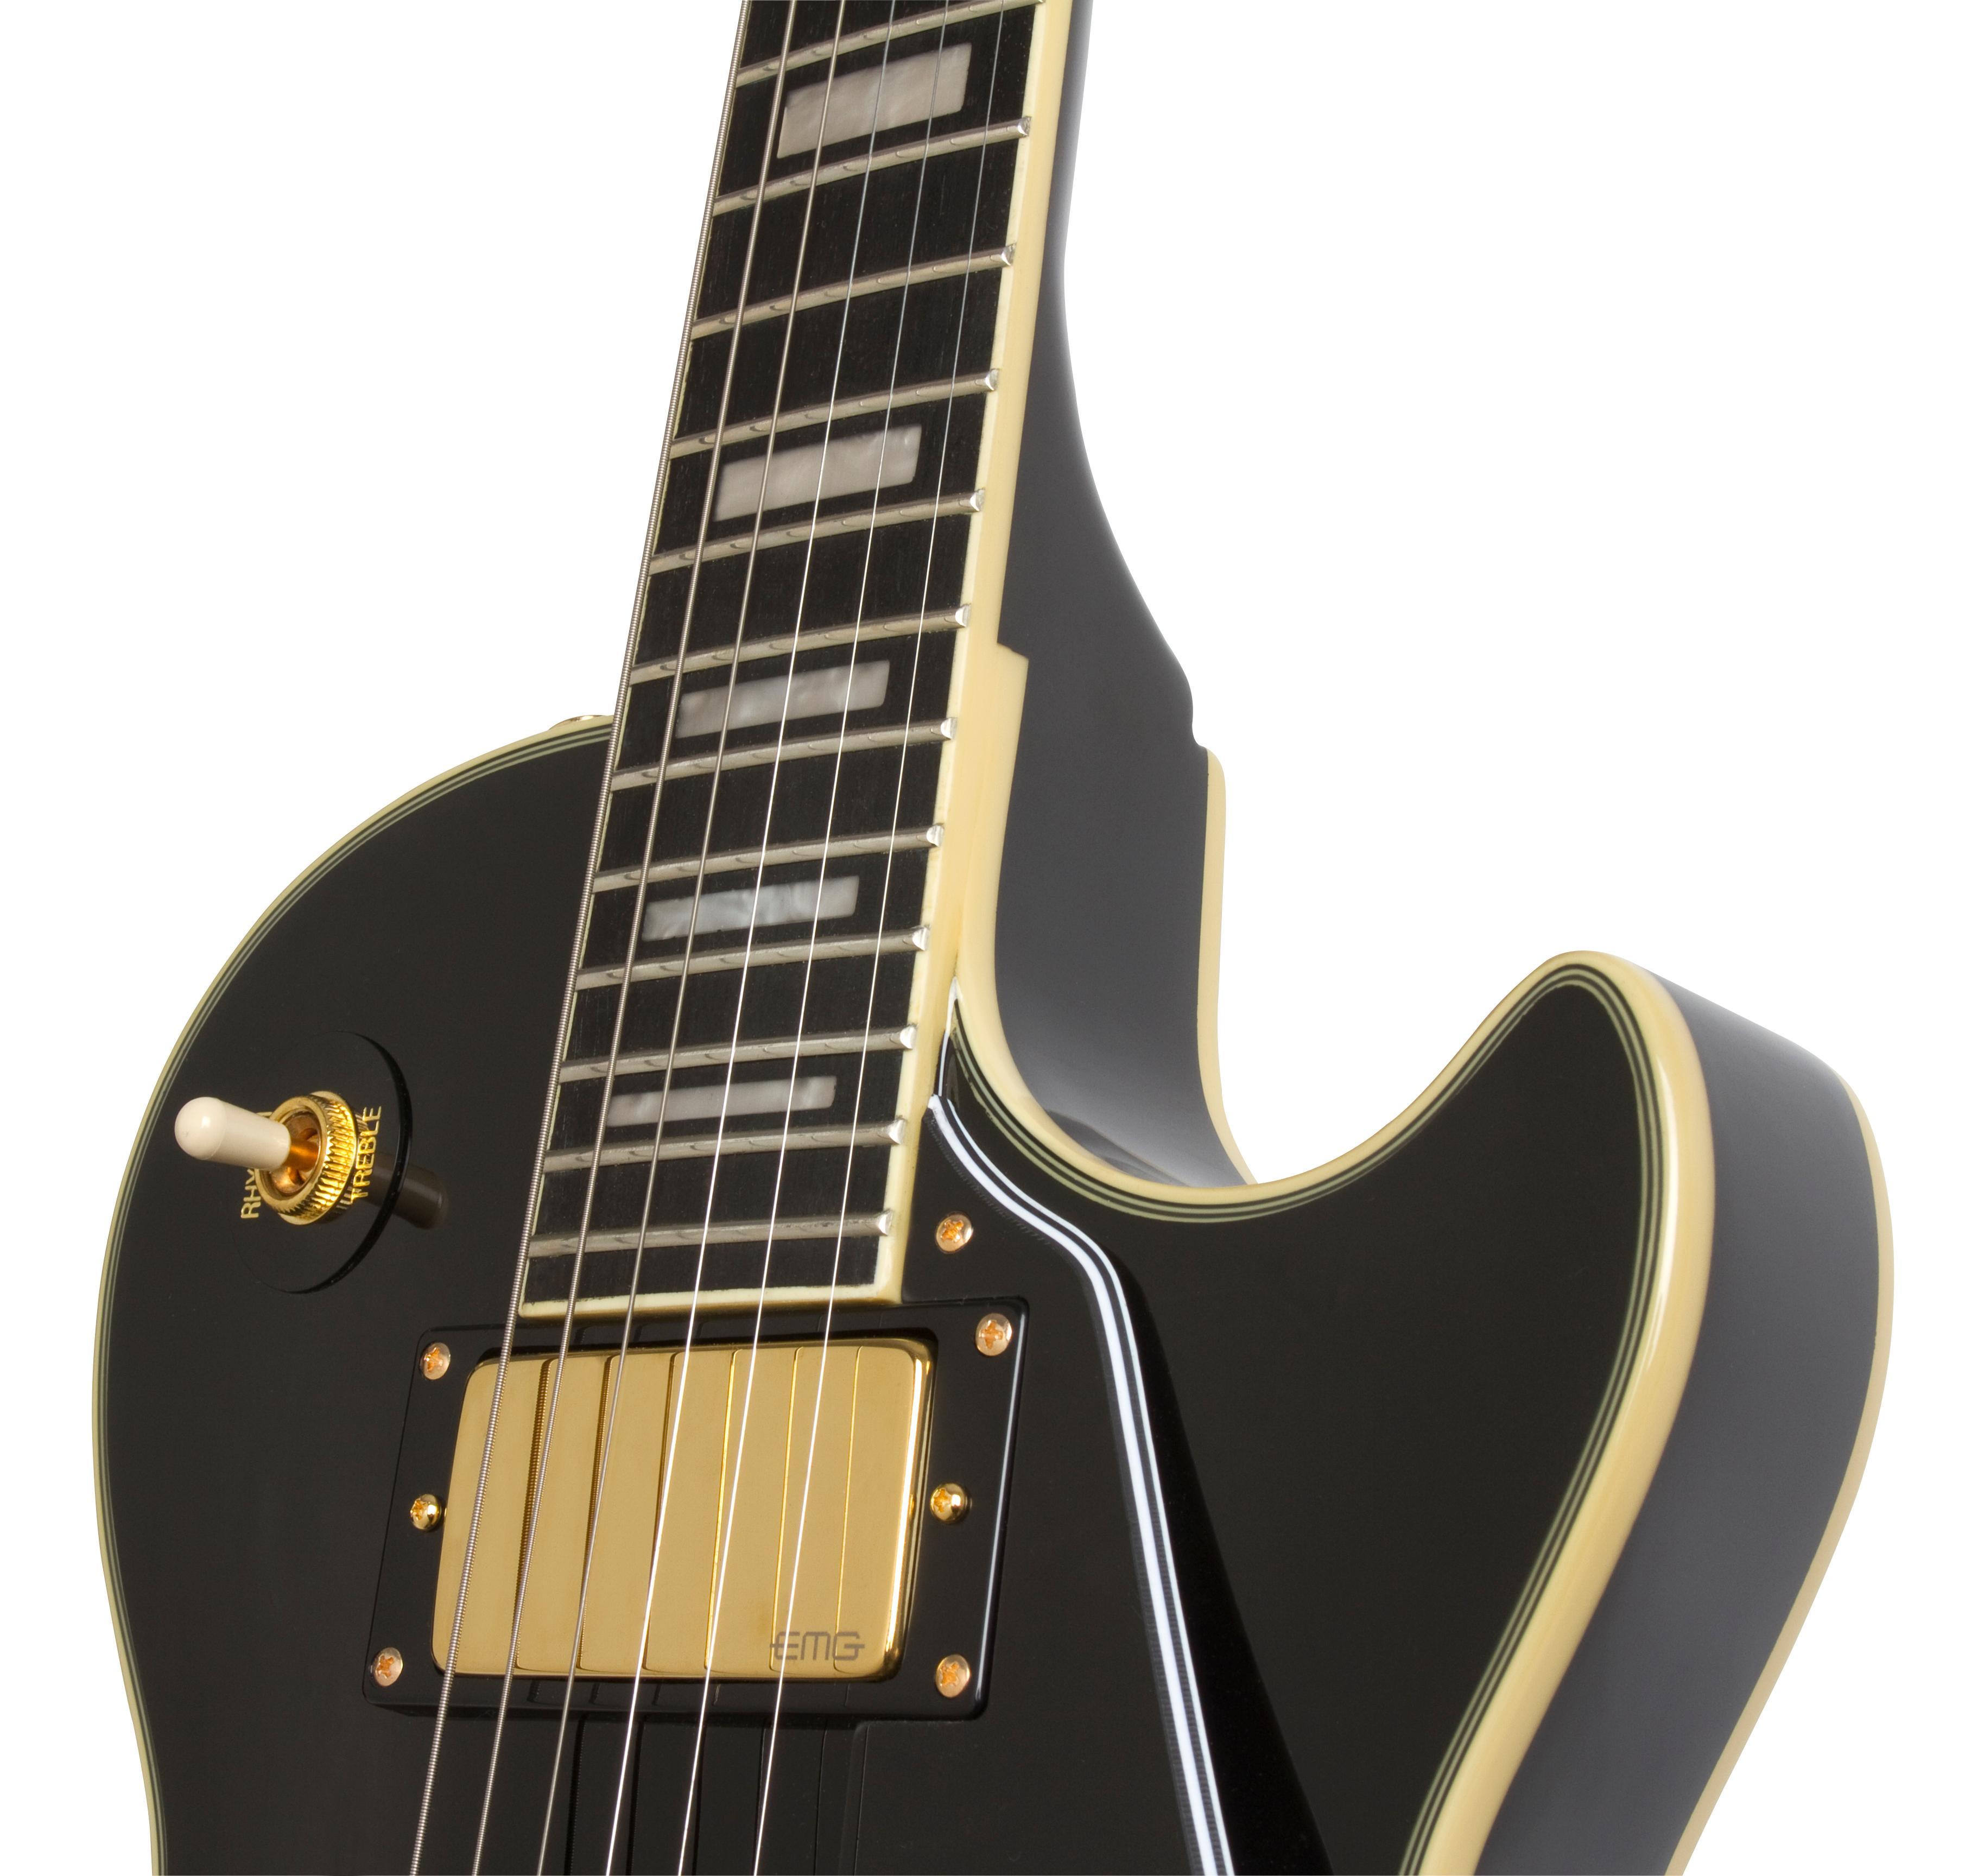 epiphone enbgebgh3 solid body electric guitar ebony